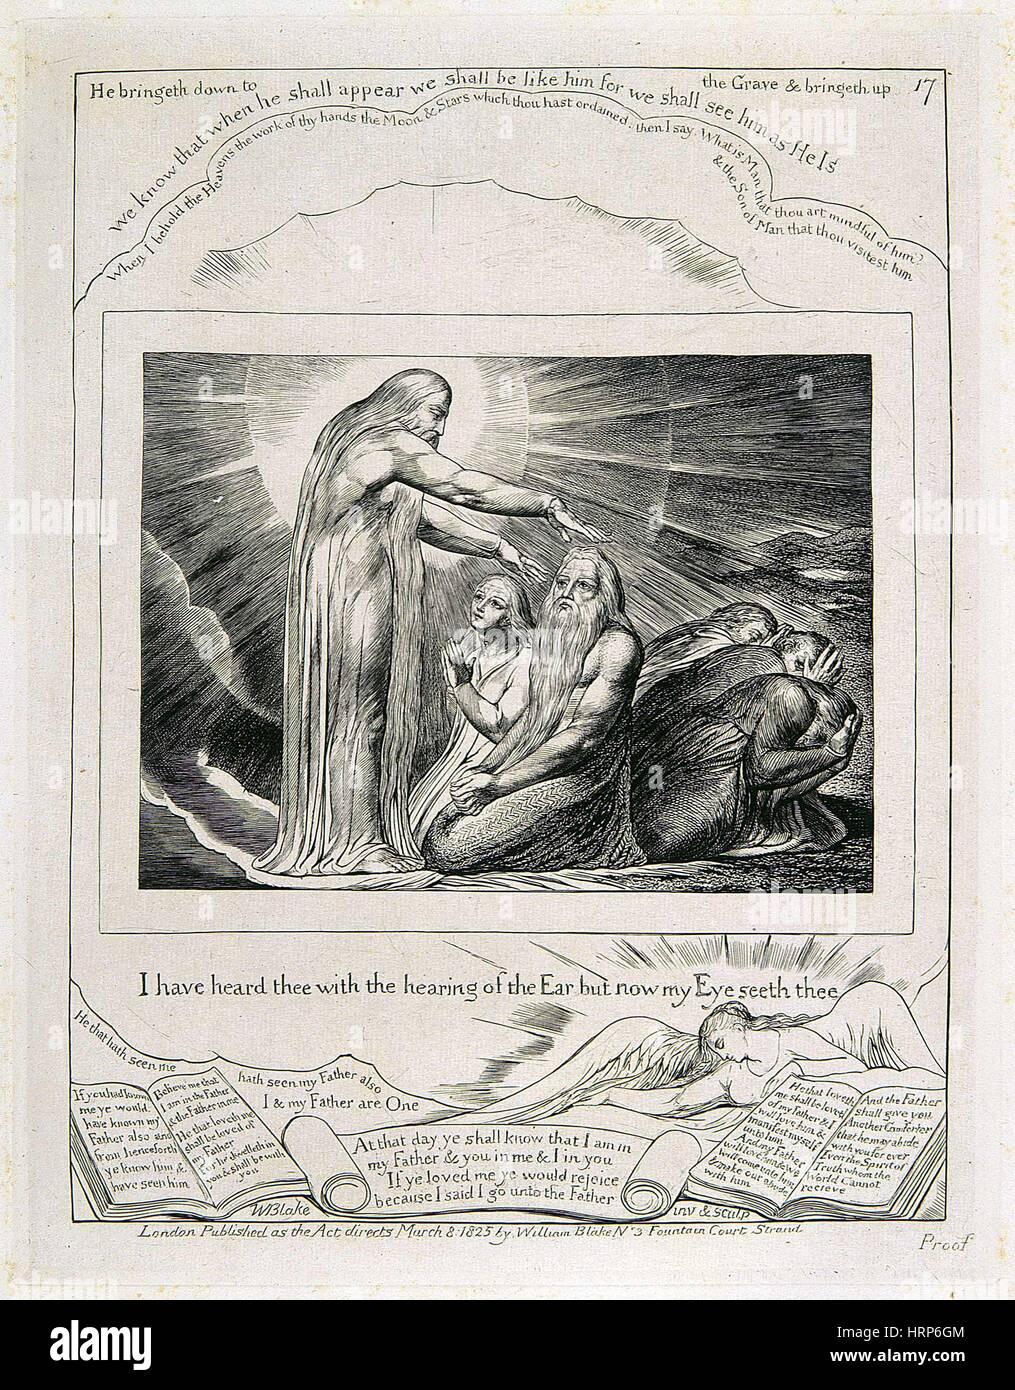 William Blake's 'The Vision of Christ' - Stock Image